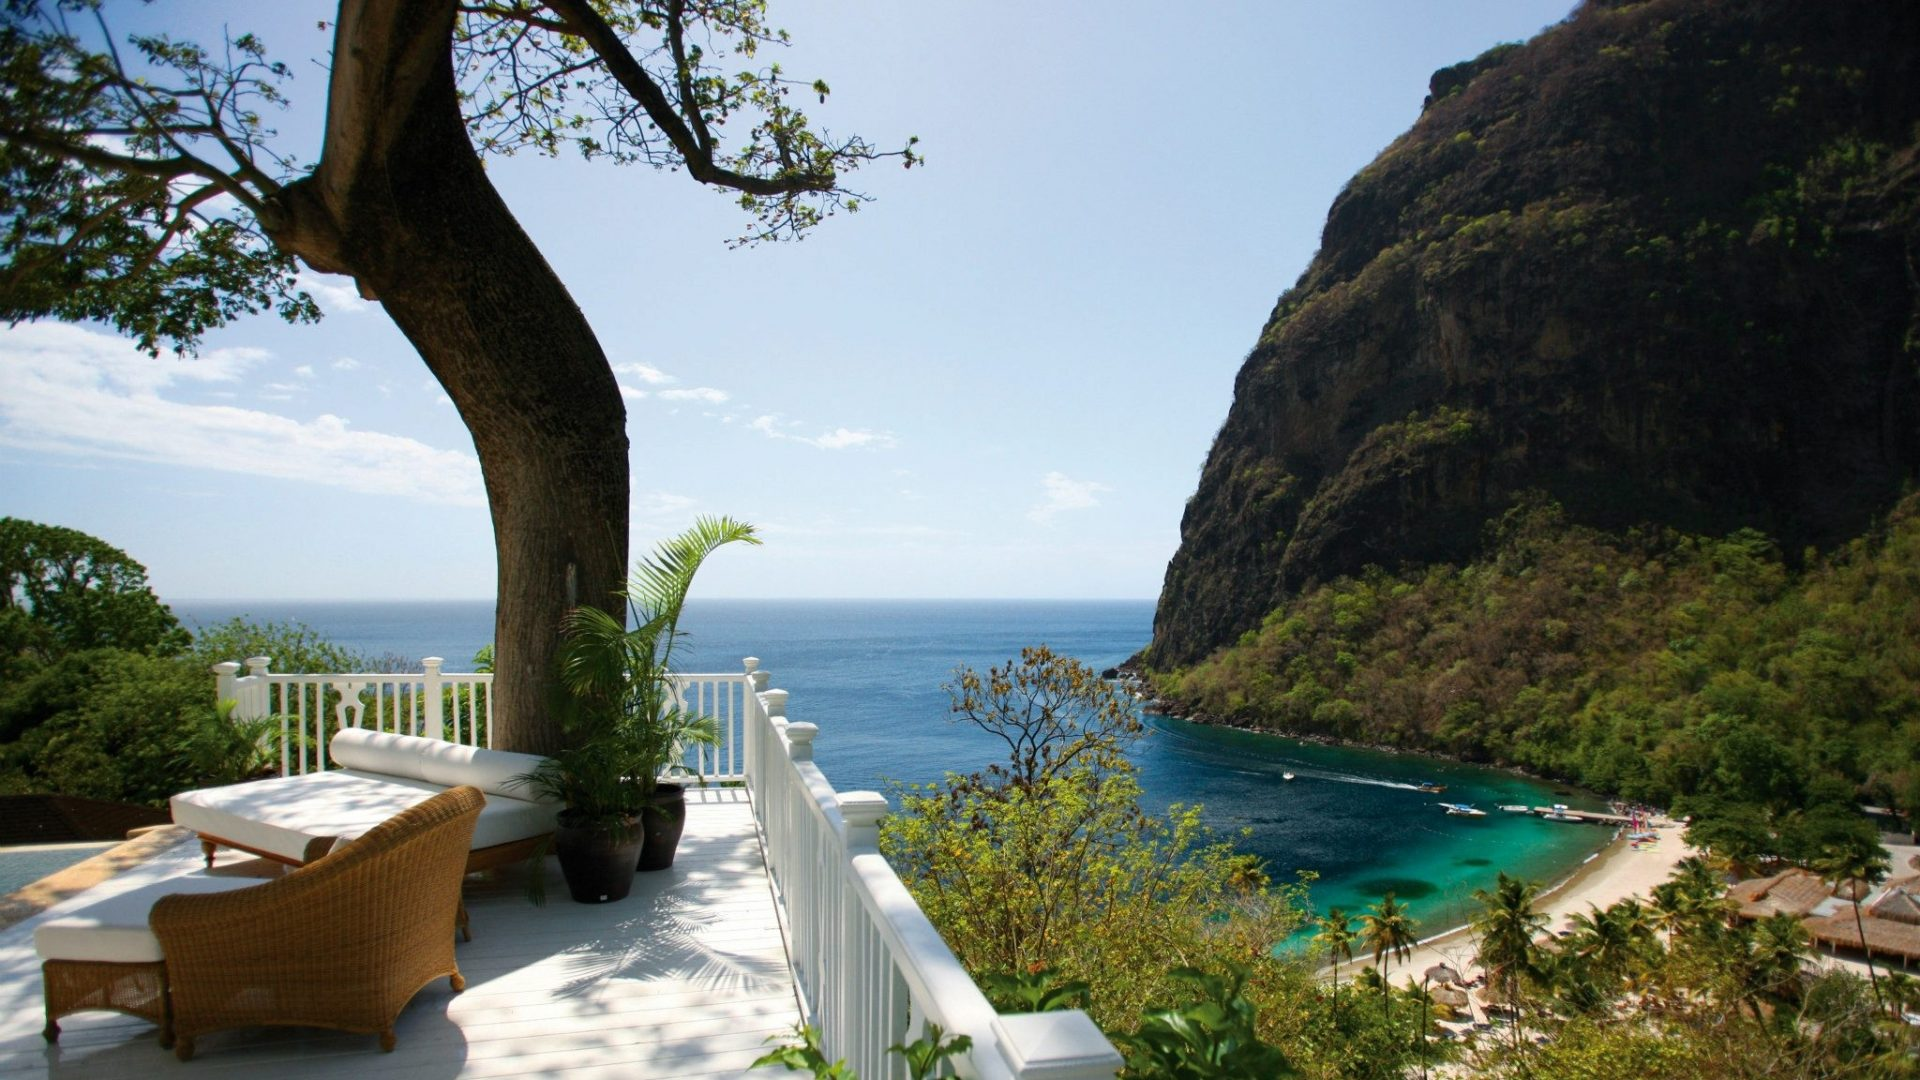 St Lucia Caribbean Sea: What Is The Definition Of Peace And Vacation For You